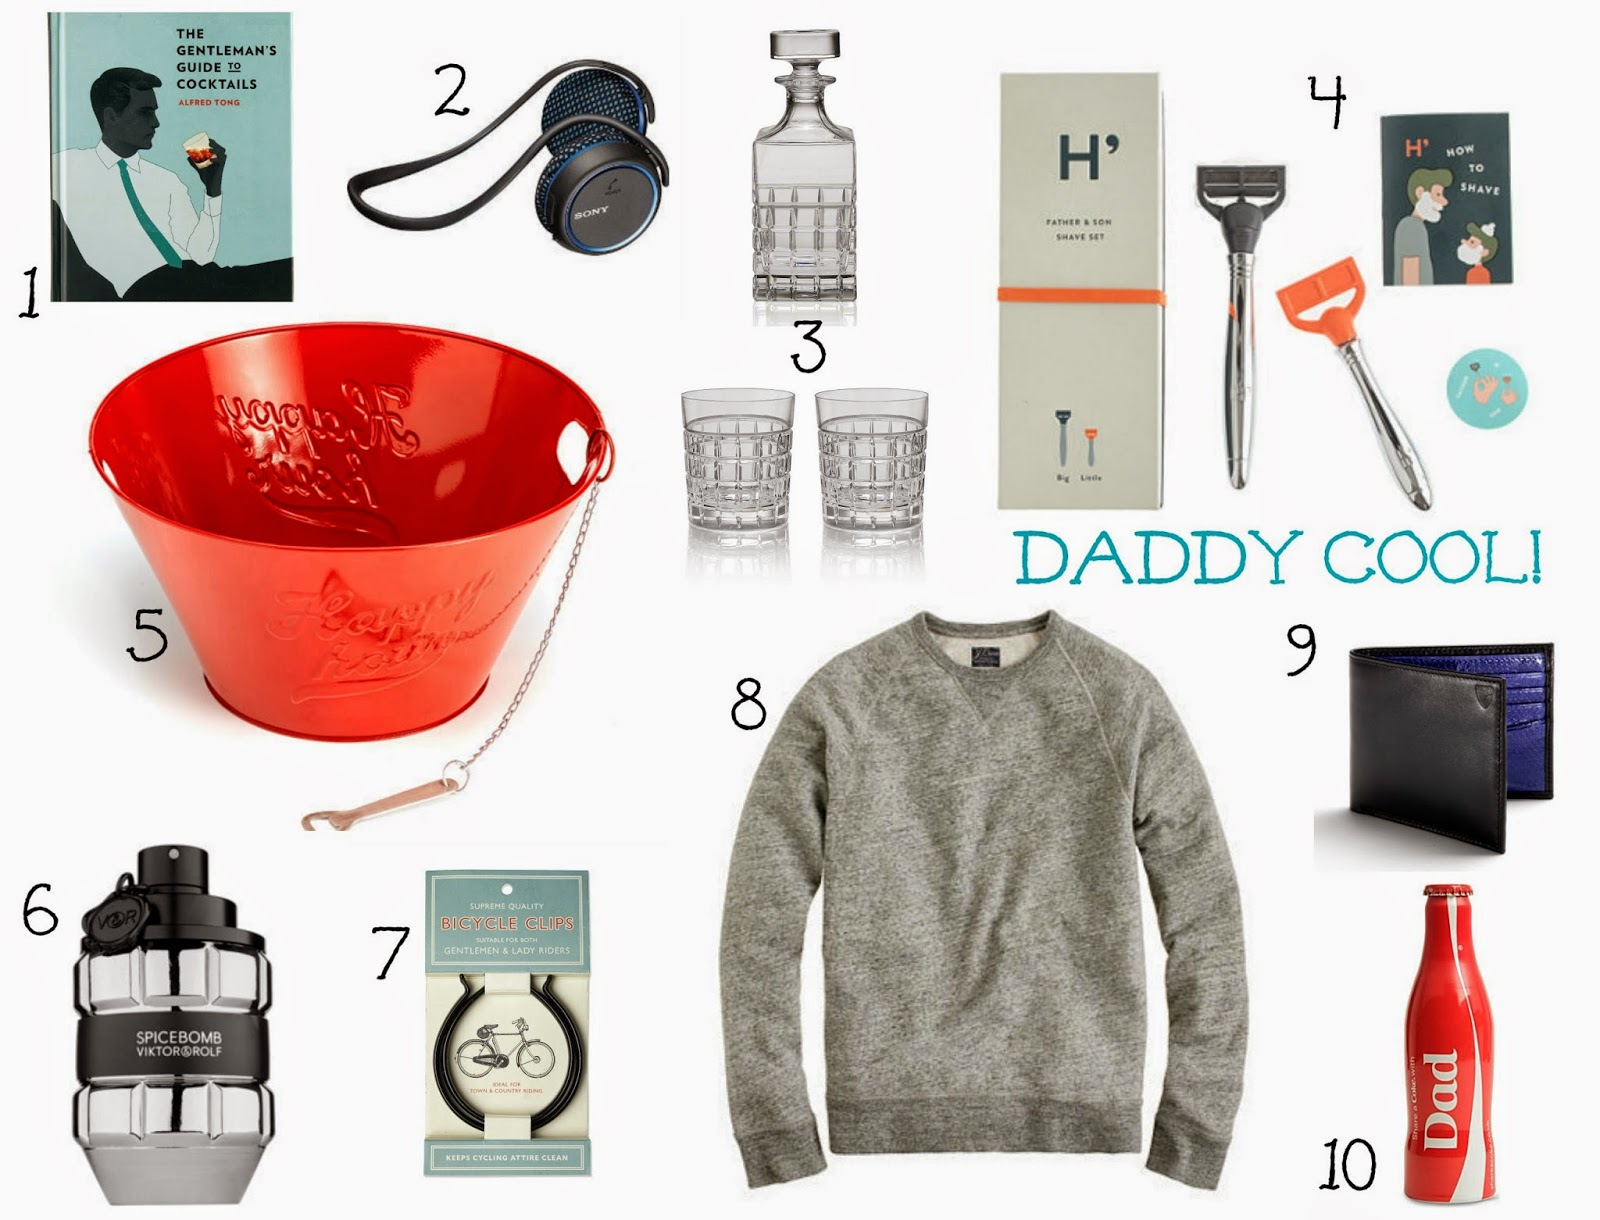 The Perfect Father's Day gifts from £1.99 | fathers day gift guide | gifts | dads | daddy | new dads dad gift | present ideas for dads | father day gifts | father day | sunday 15th june | selfridges | oliver bon as | marks & spencer | j crew | shaving set | sweatshirt | daddy picture | dad gift | mamasVIb | gift guide | present ideas | luxe gifts | daddy shopping